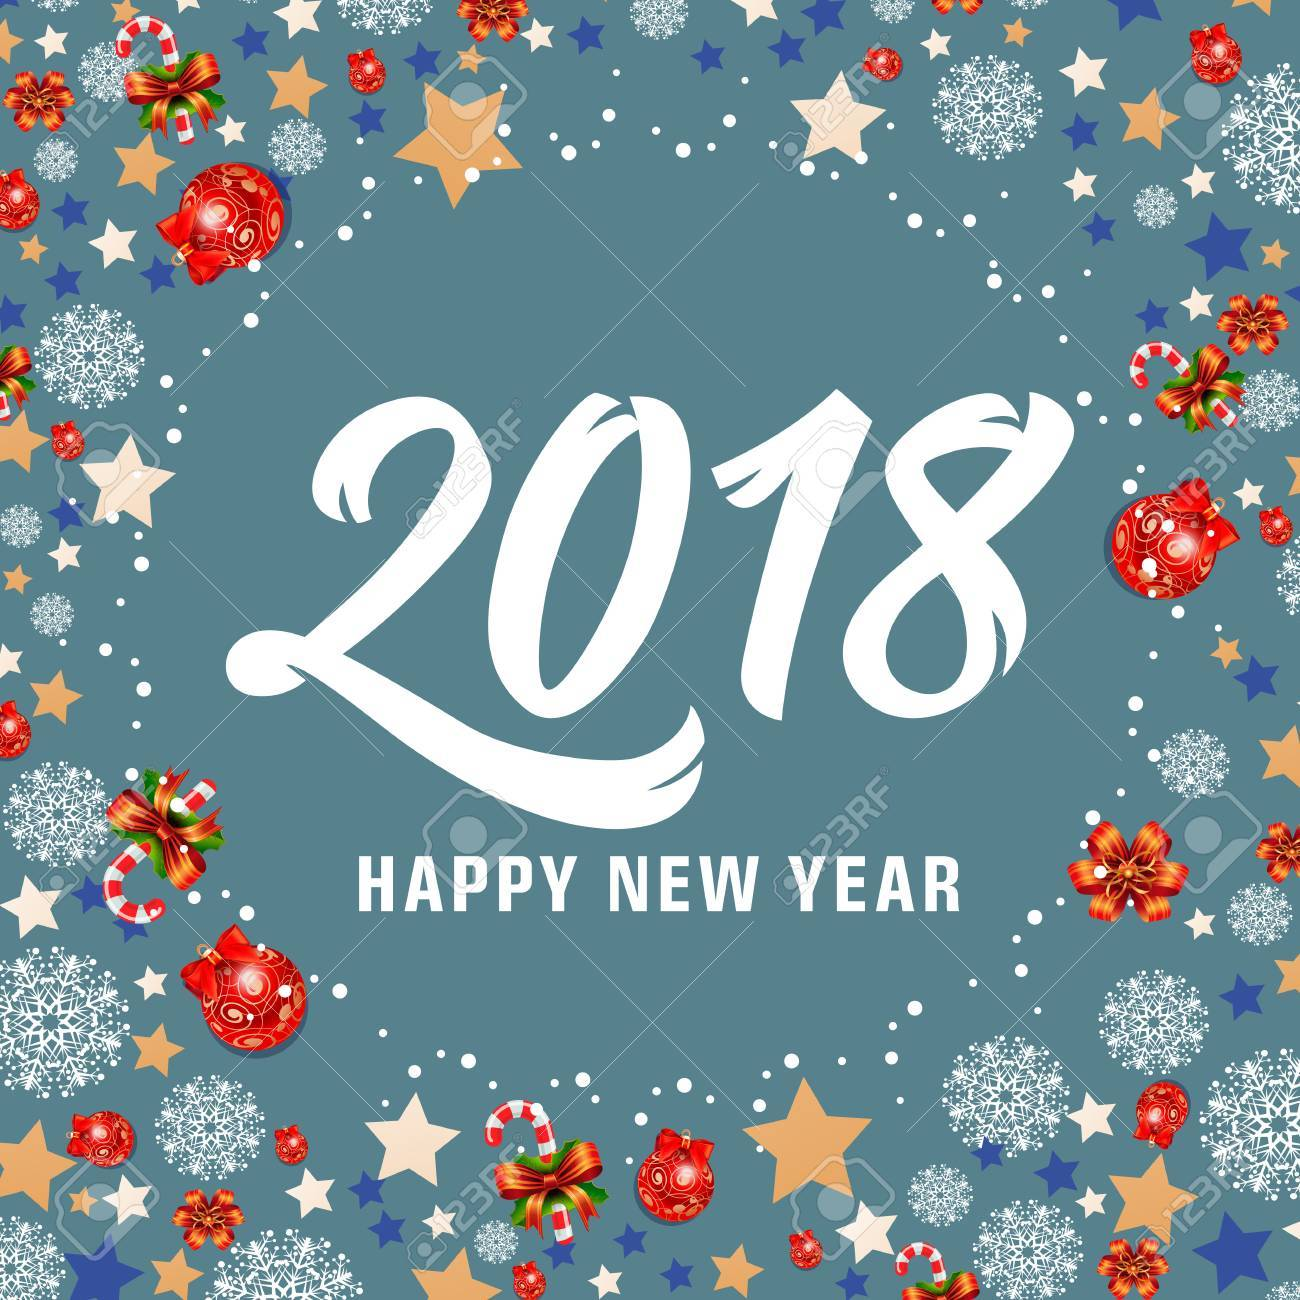 Happy new year 2018 lettering new year day greeting card with happy new year 2018 lettering new year day greeting card with stars candy canes m4hsunfo